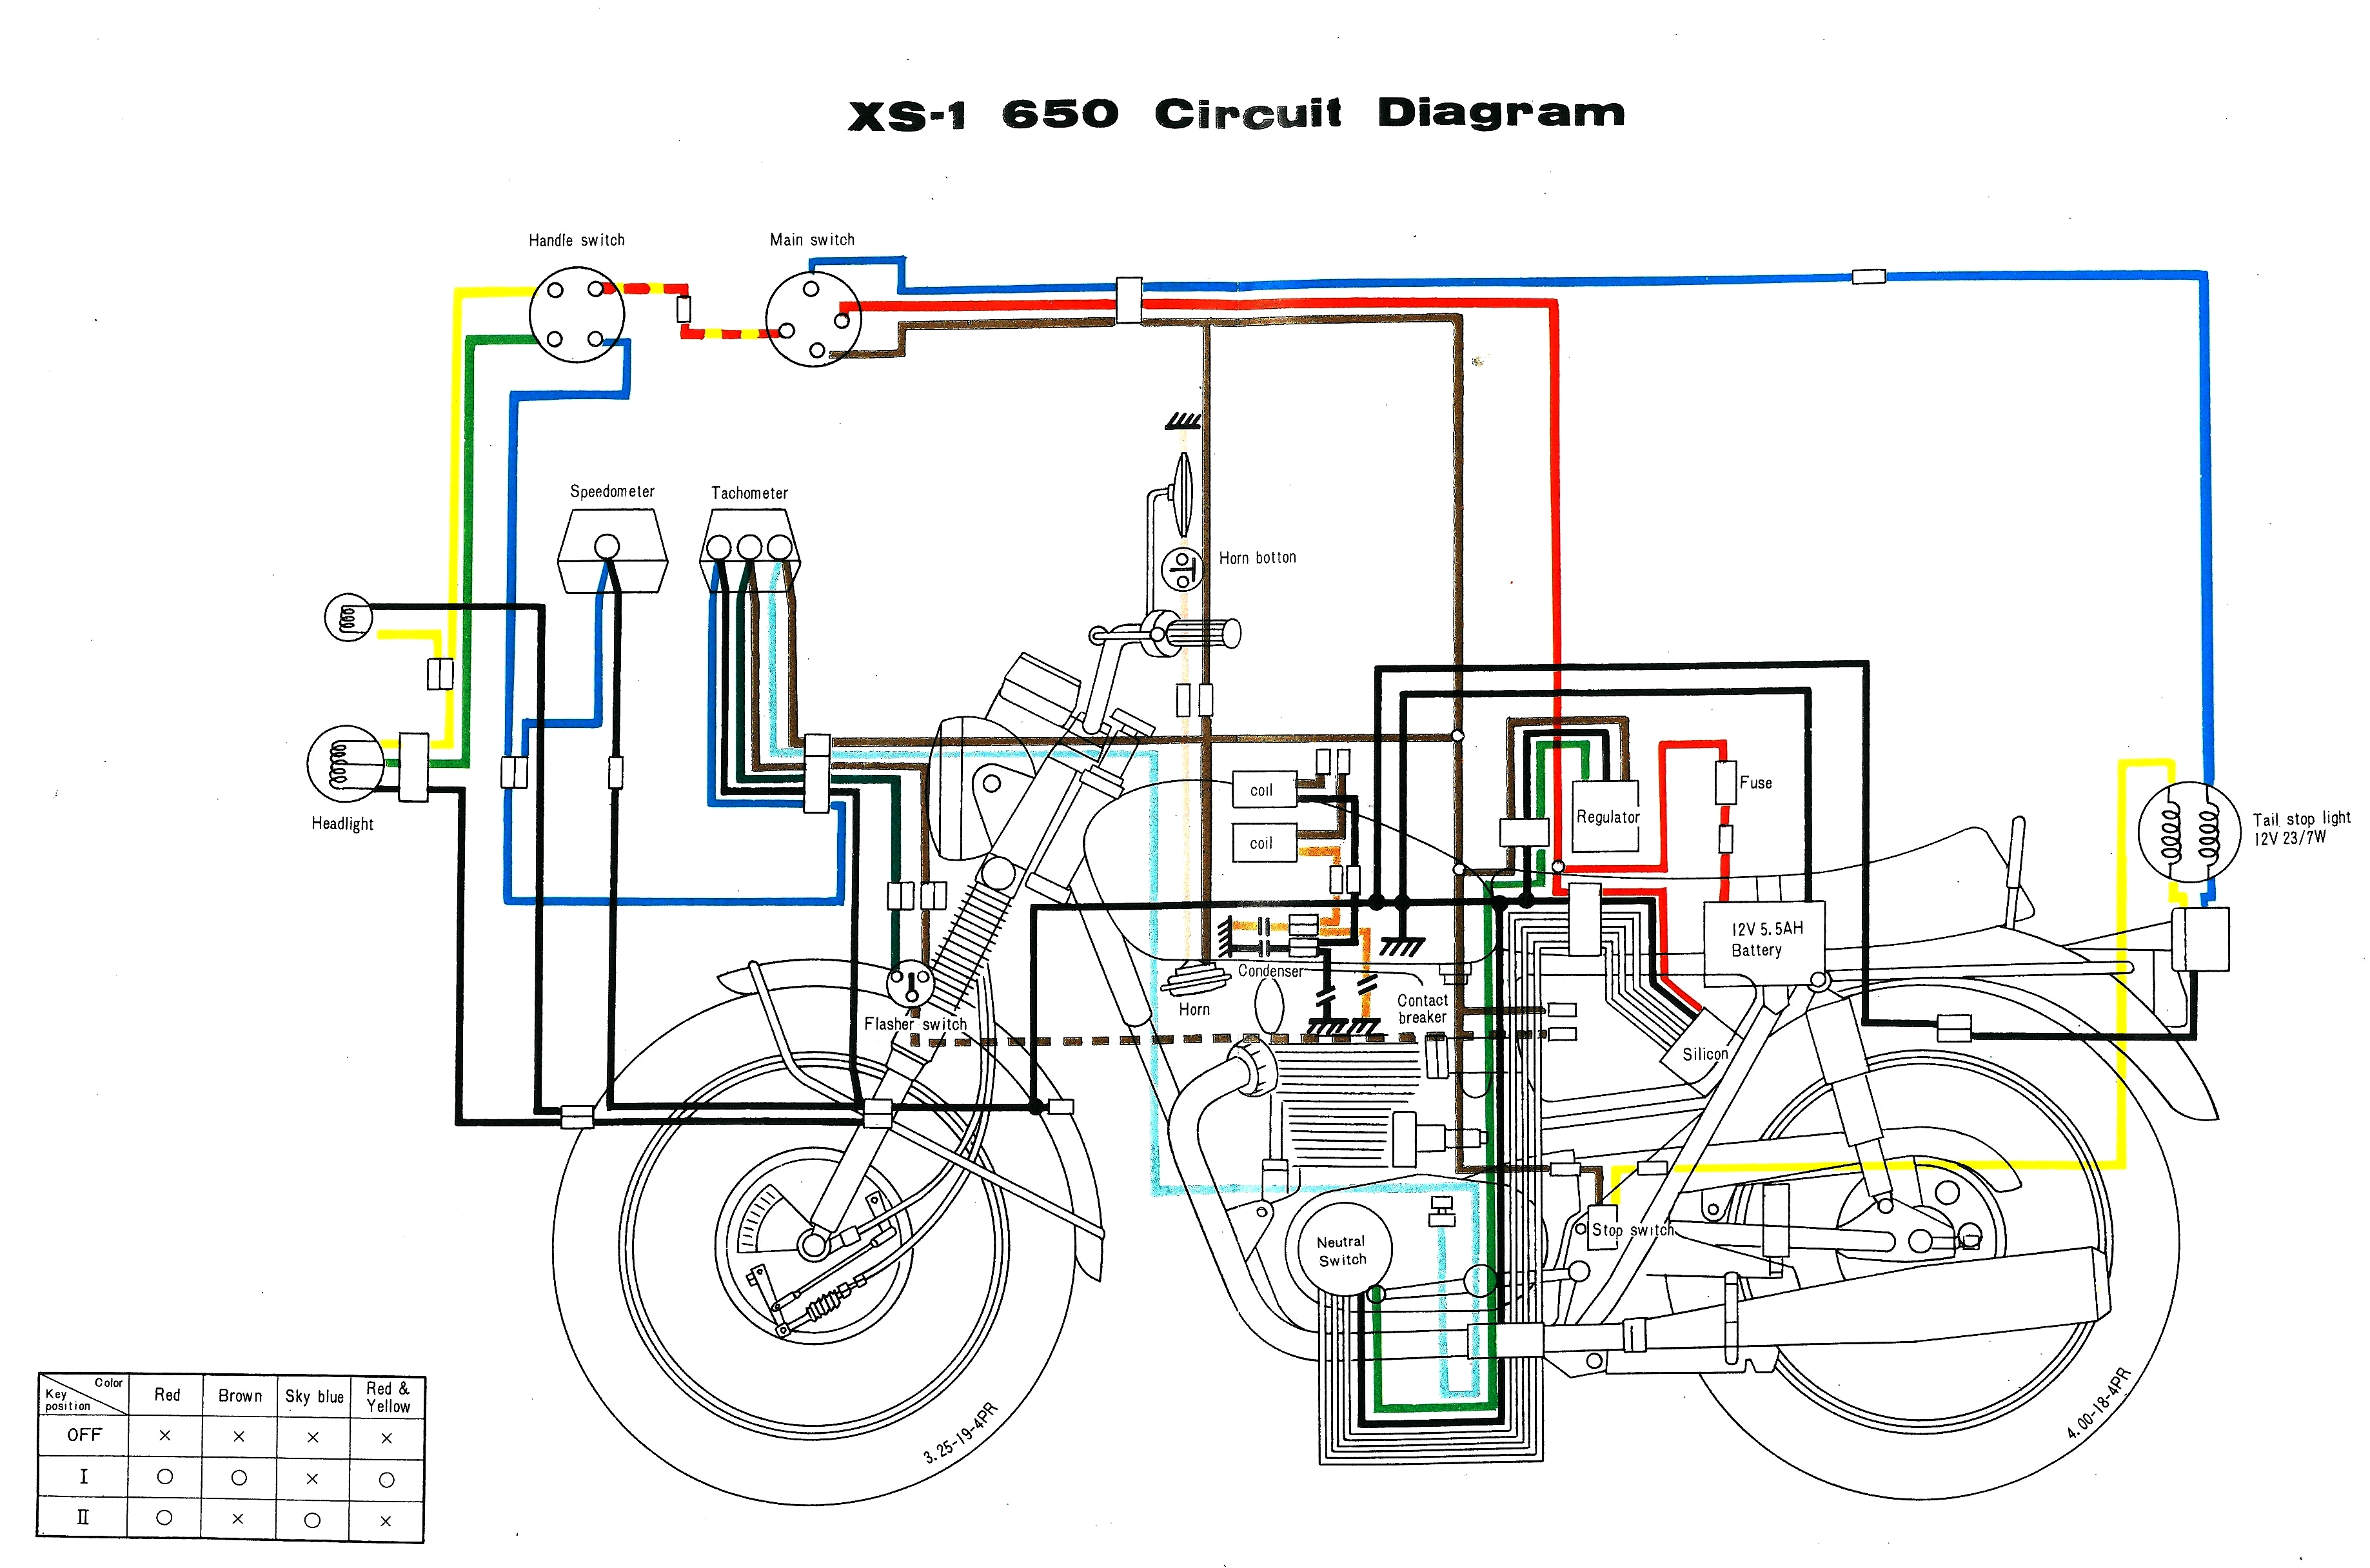 Circuit Drawing At Free For Personal Use Can Bus Schematic Download Wiring Diagram 3675x2432 Diagrams Electronic Schematics